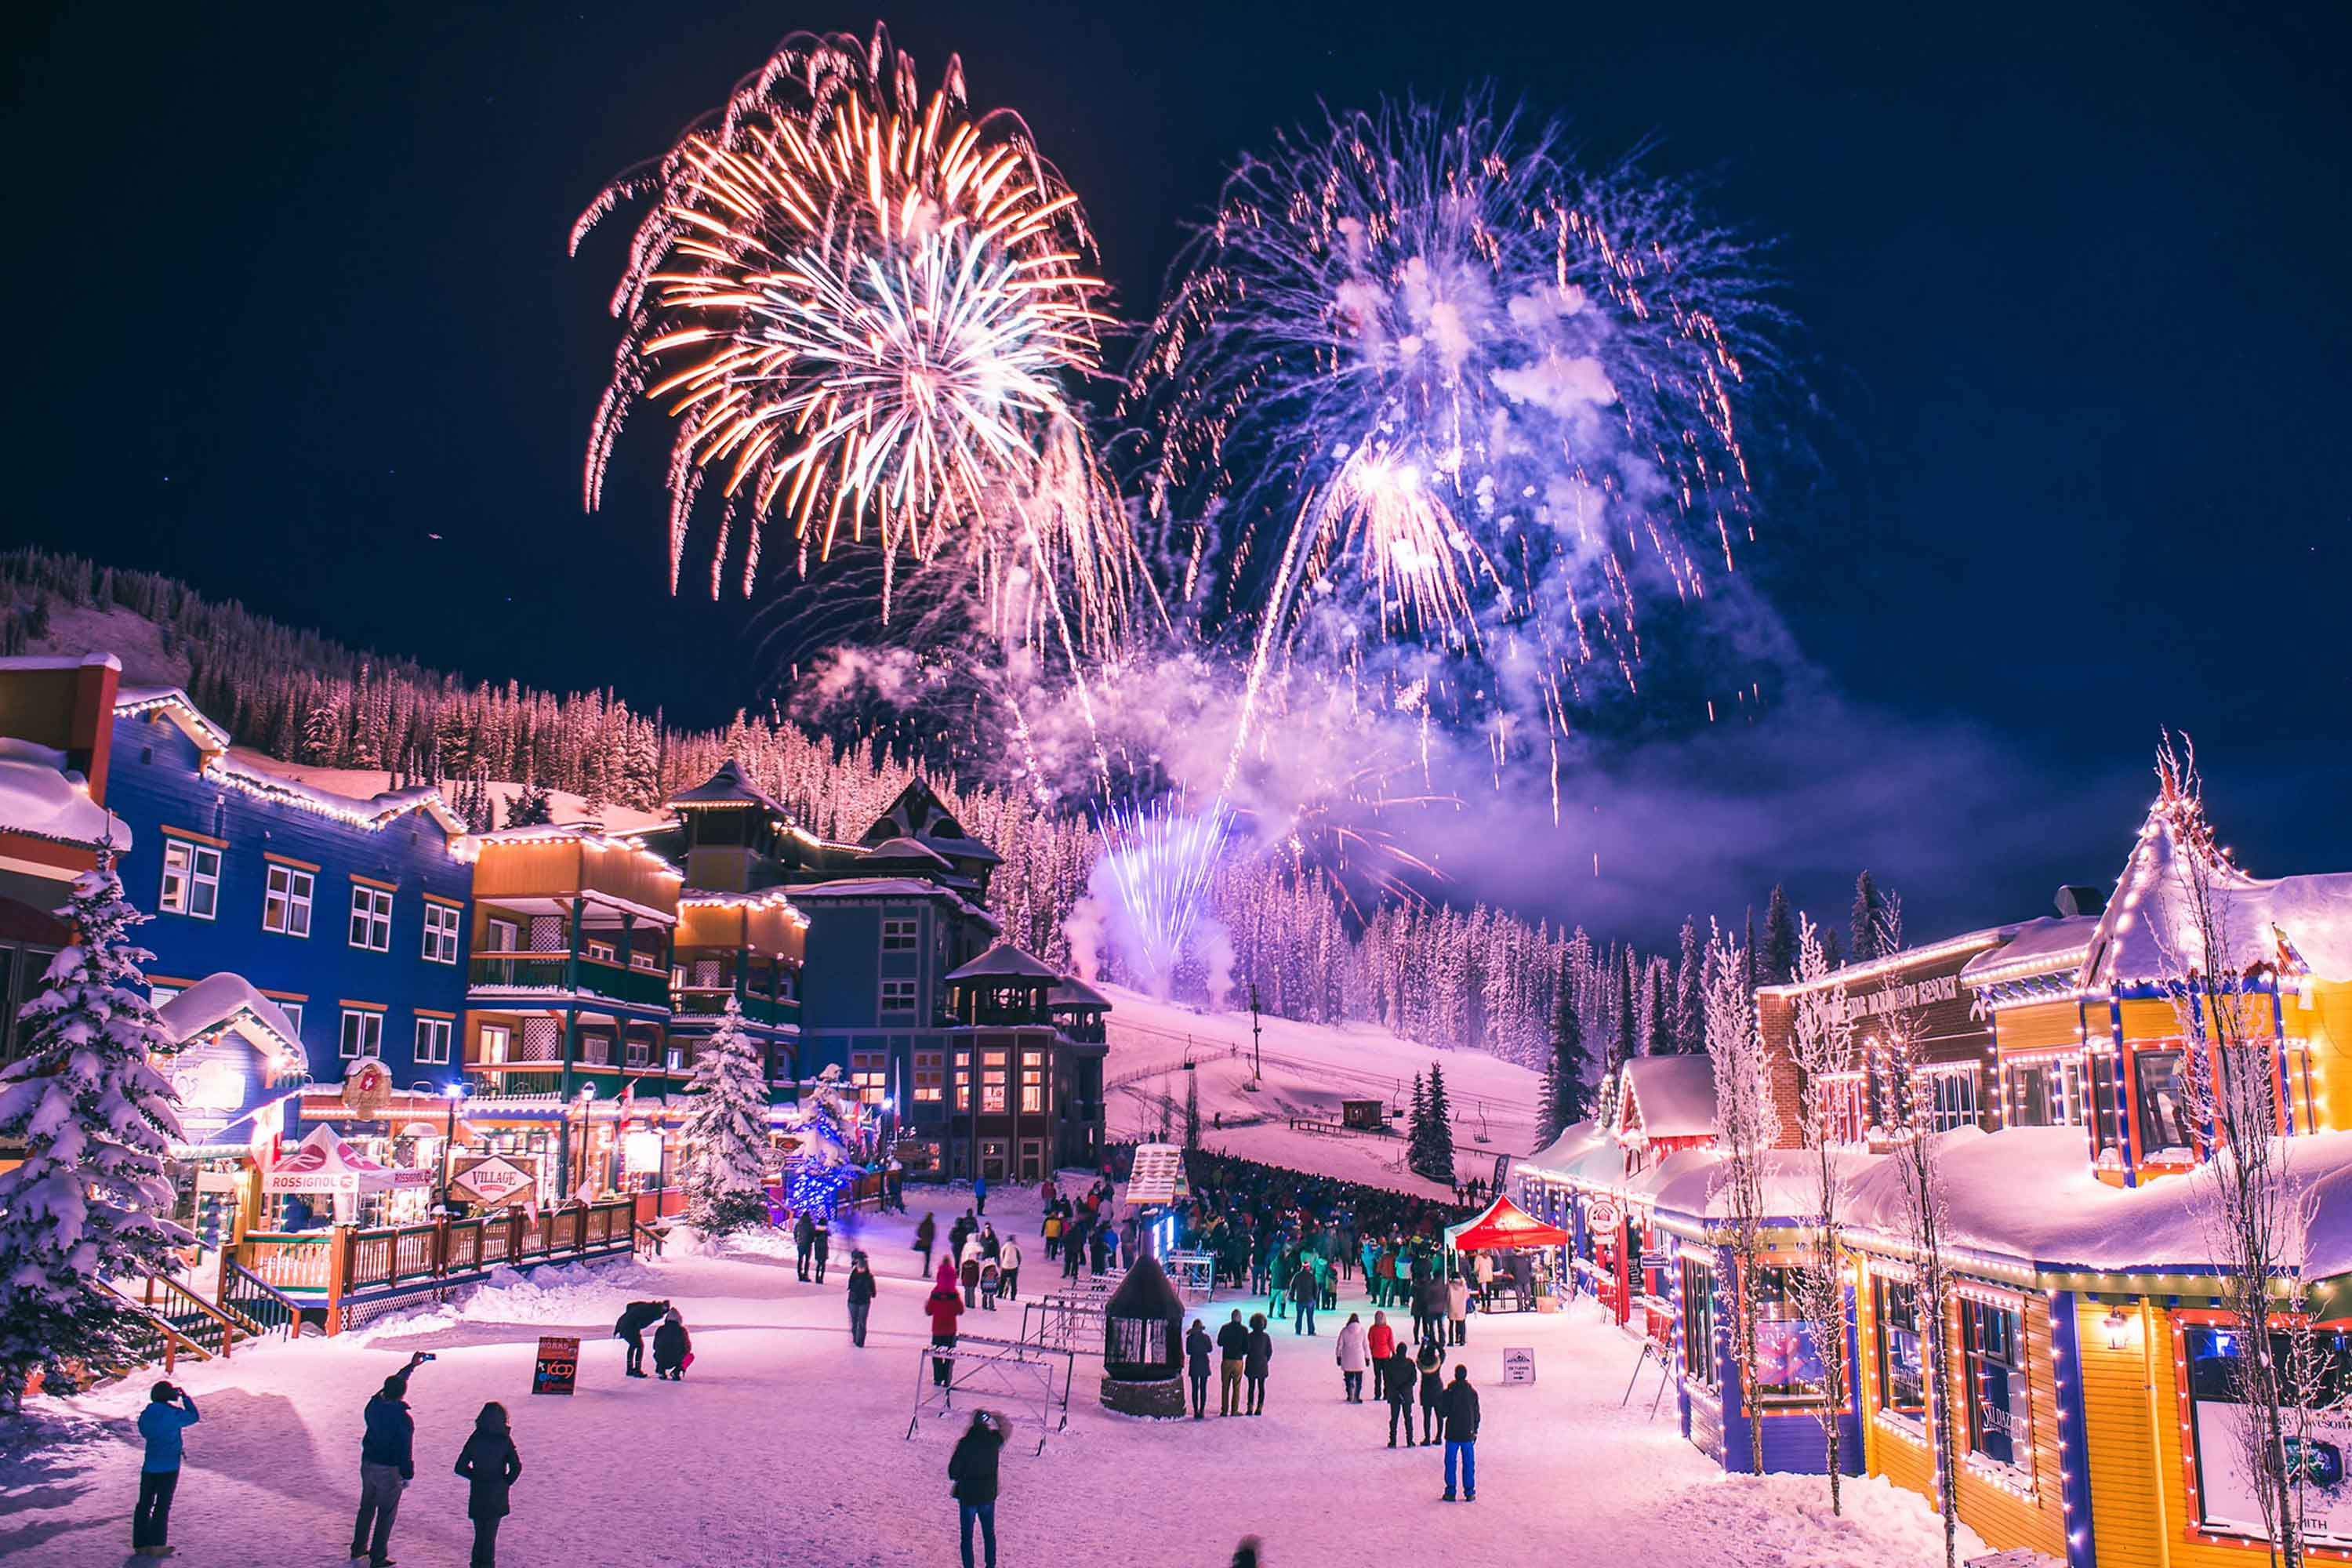 SilverStar Ski Resort Christmas Ski Holiday